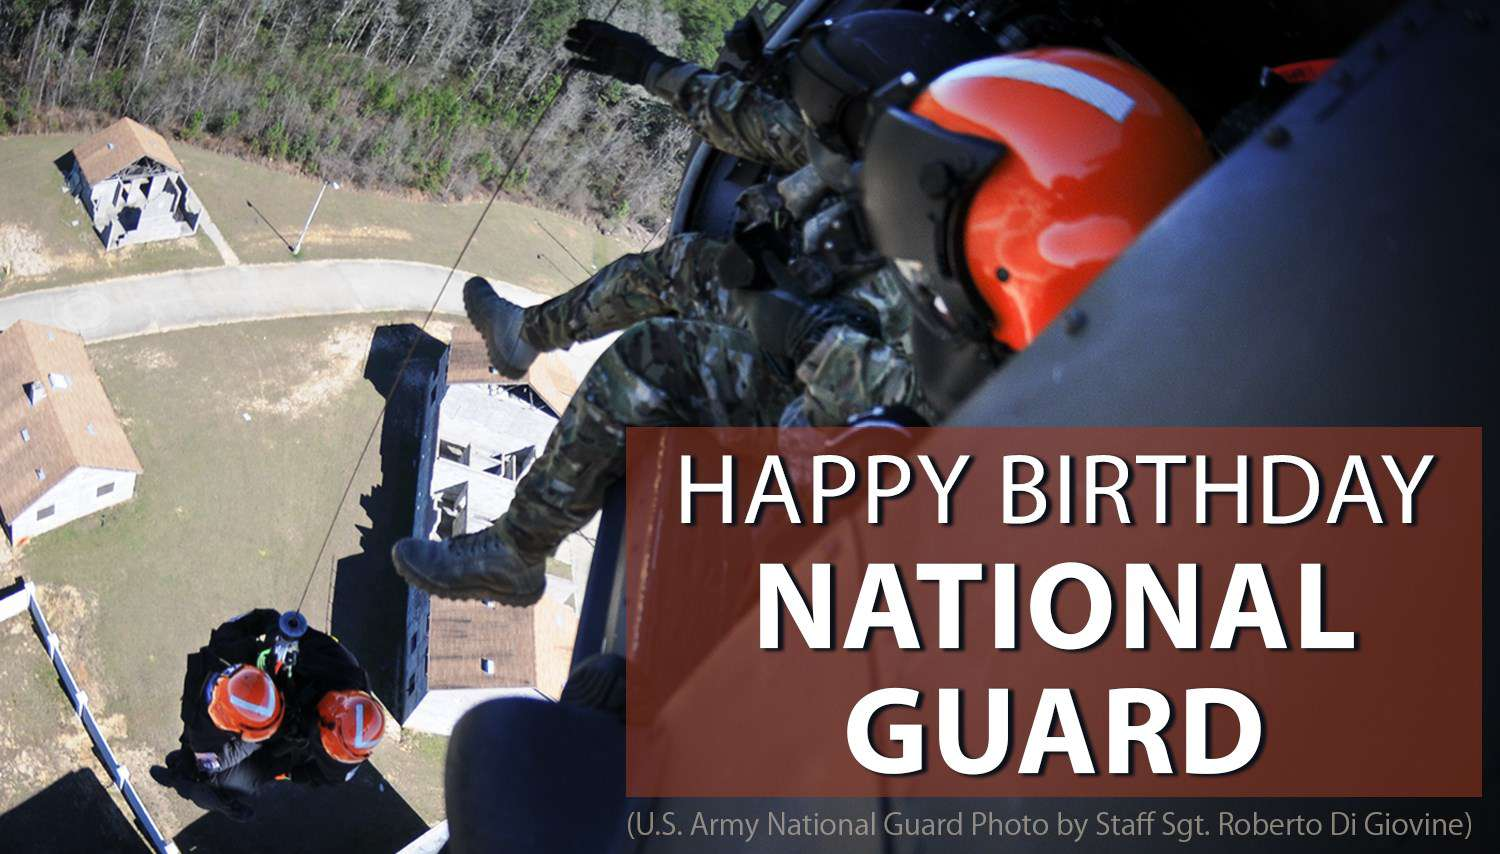 U.S. National Guard Birthday Wishes Sweet Images